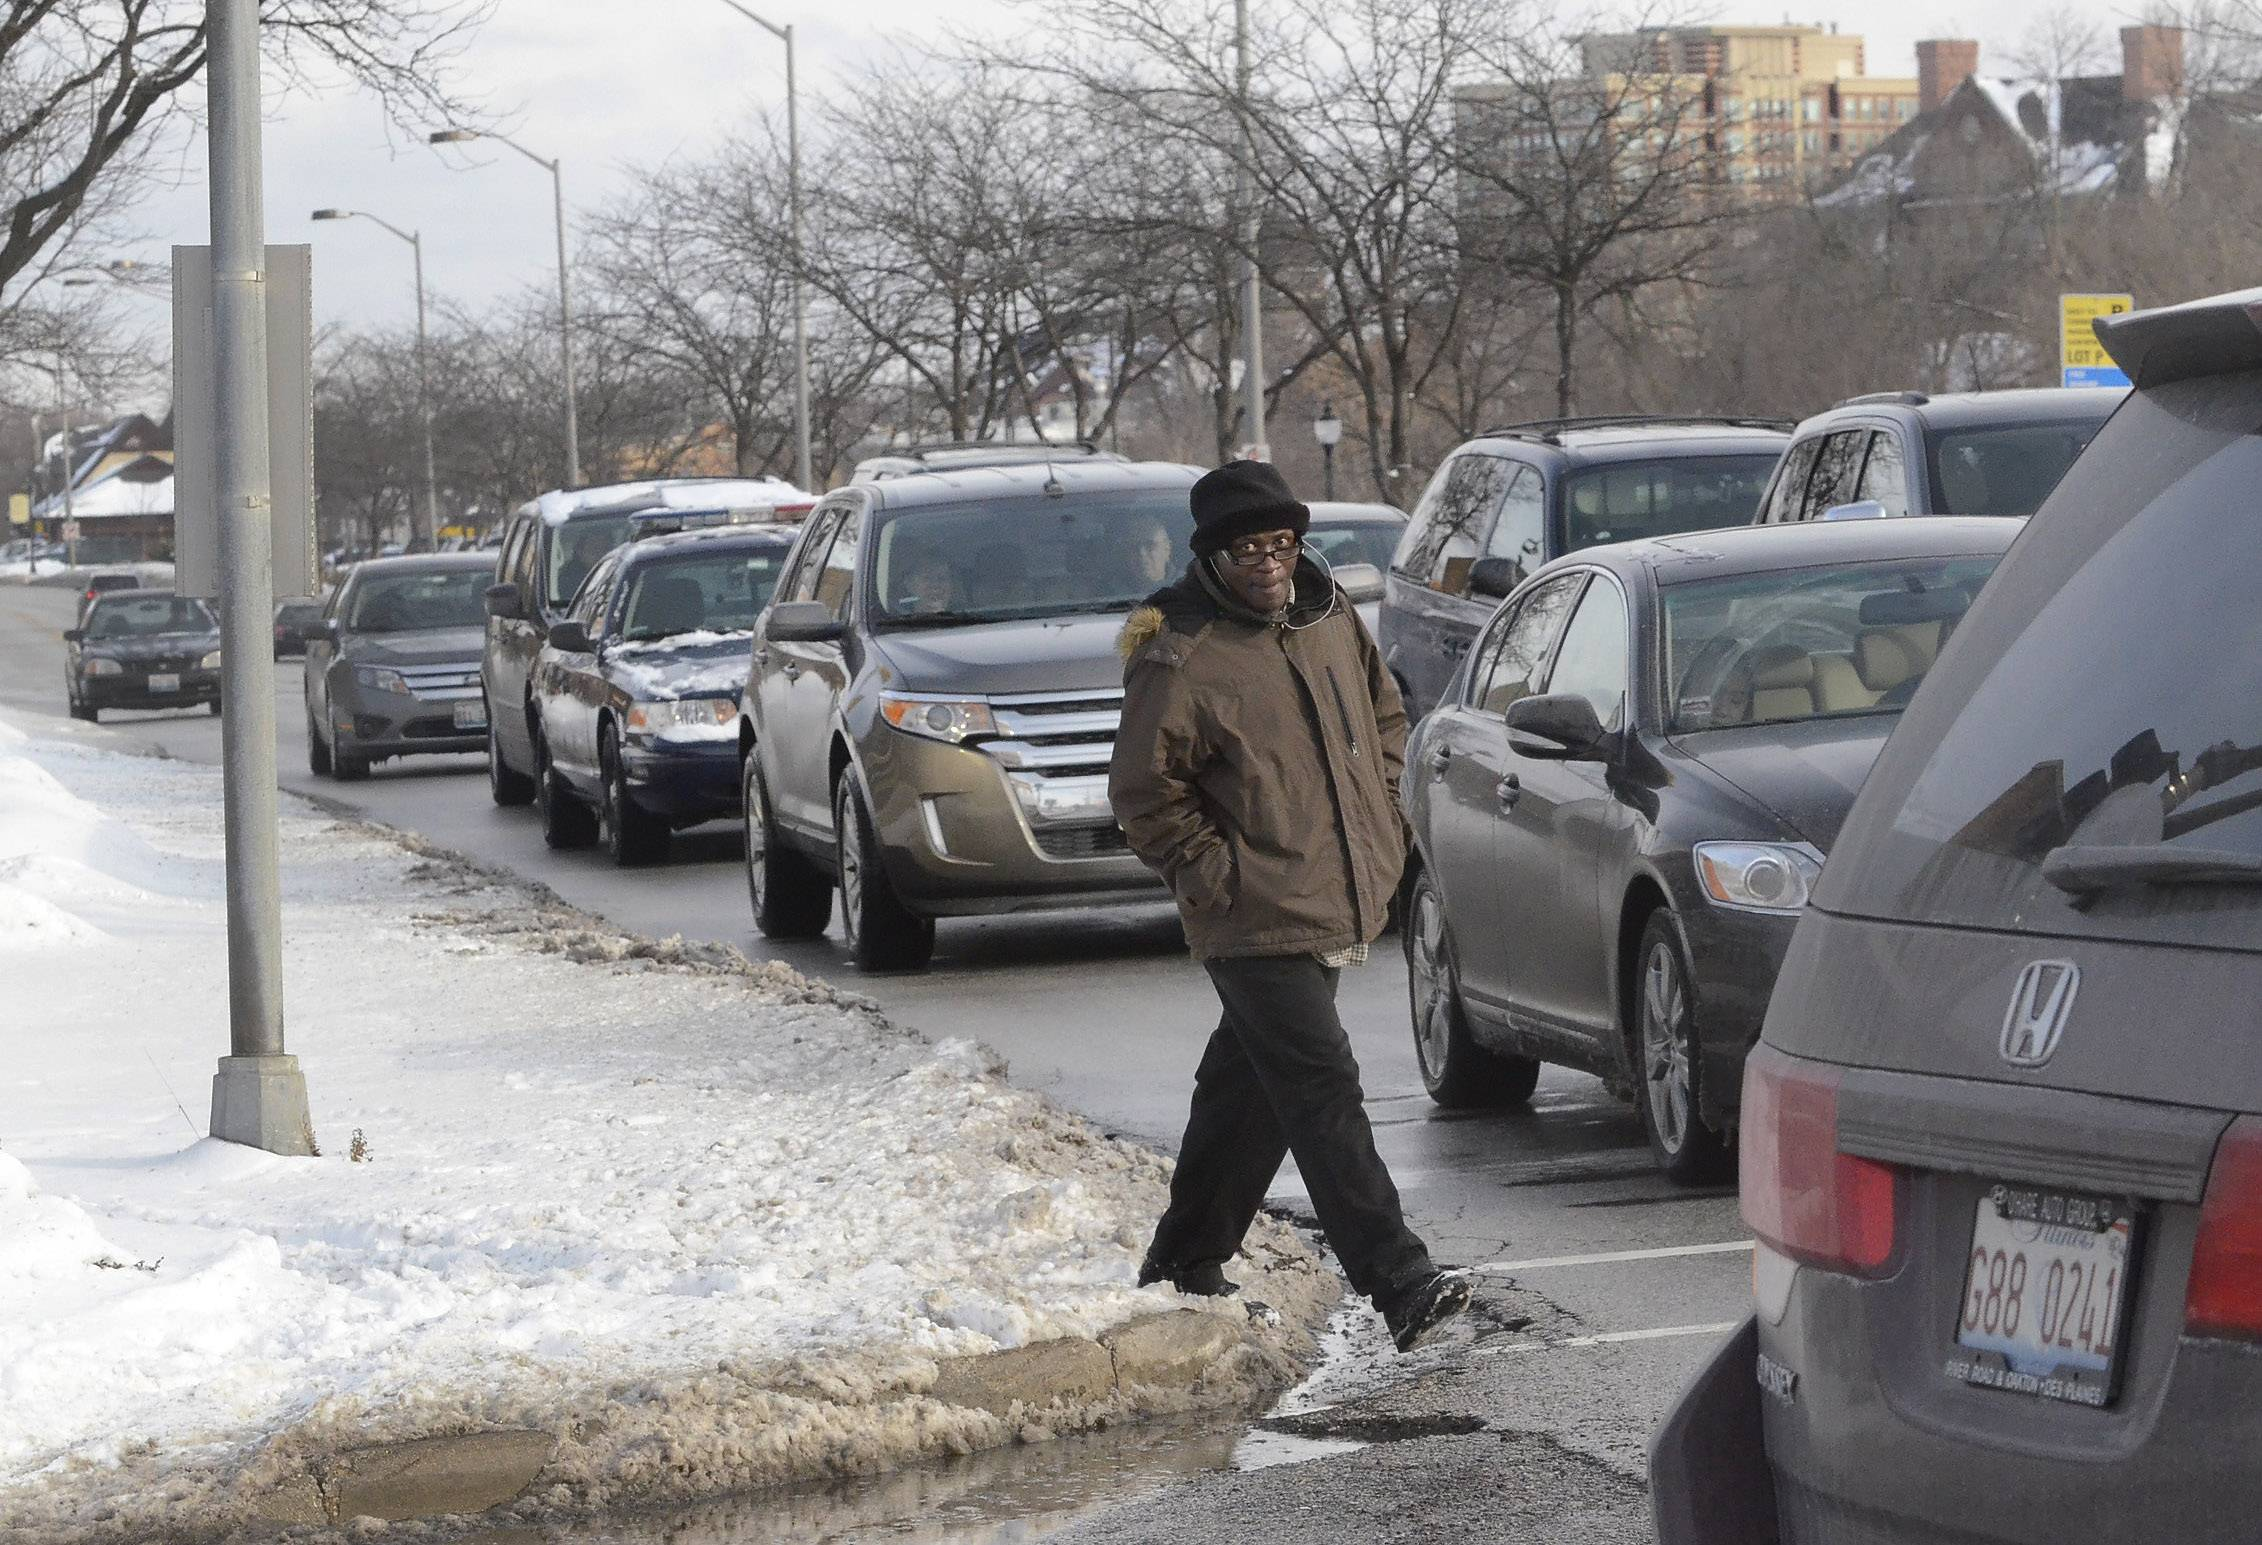 A pedestrian navigates the snowy sidewalks last week along Northwest Highway in Arlington Heights.